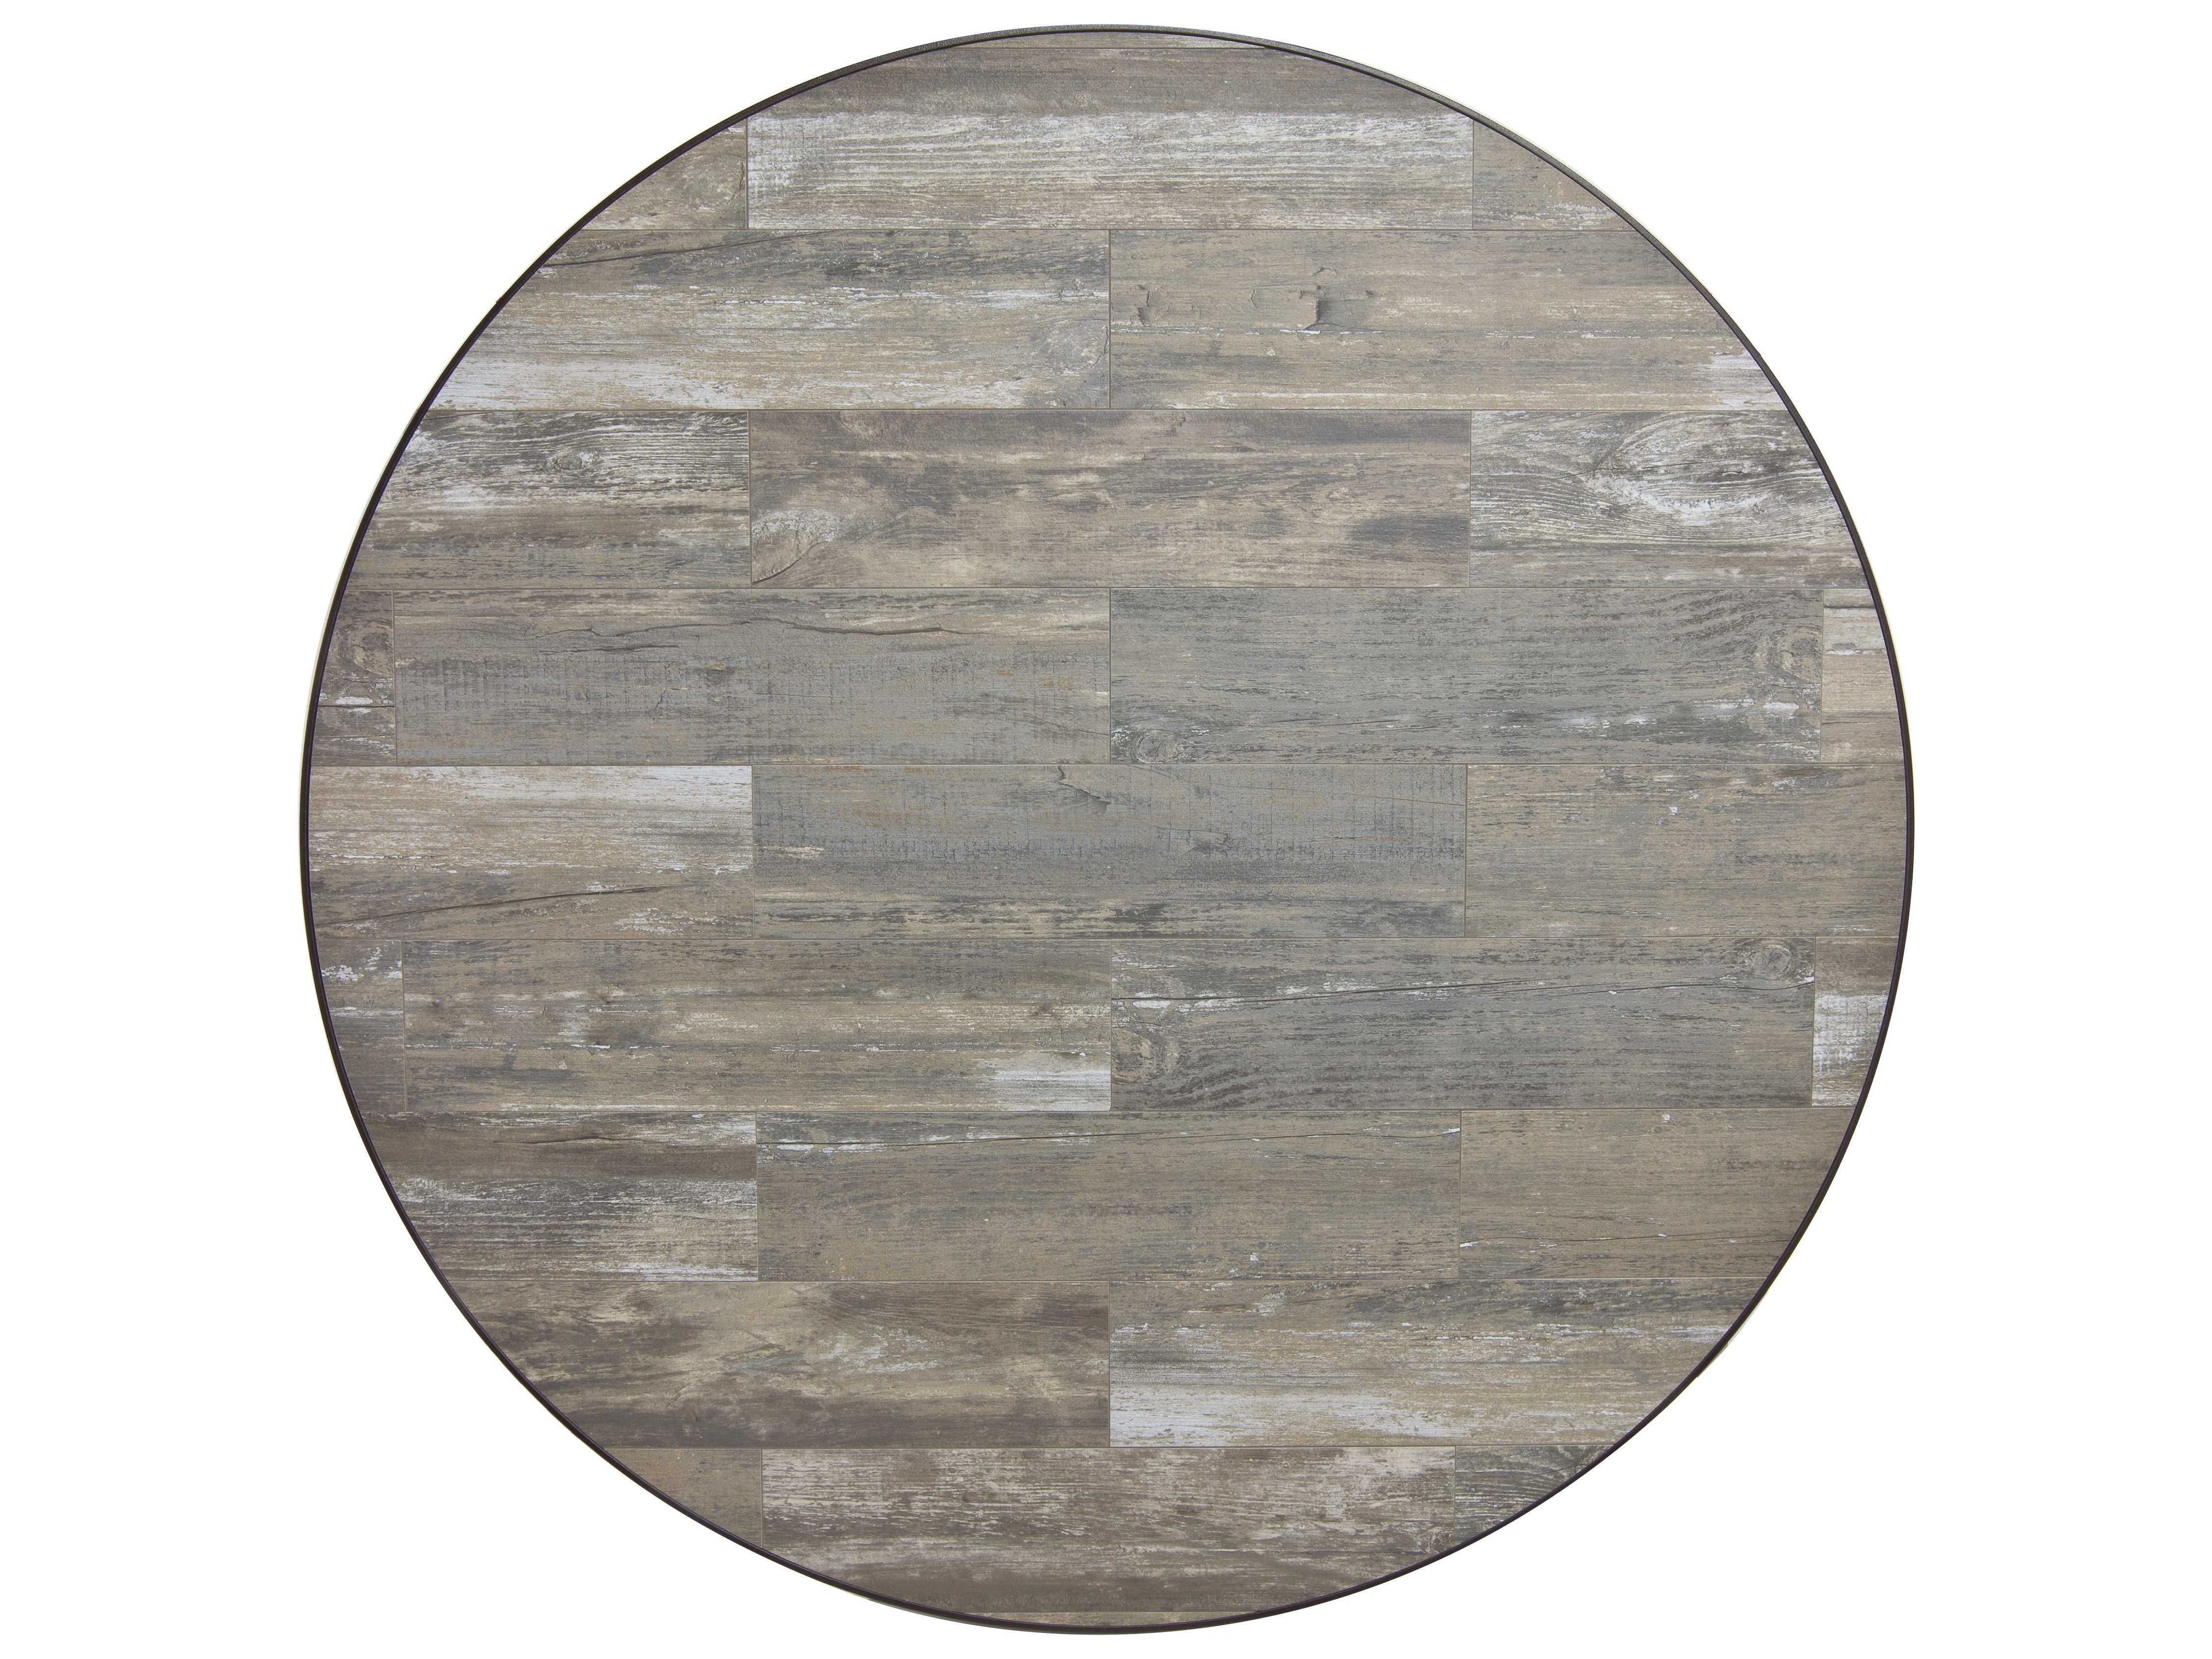 OW Lee Porcelain Reclaimed 54 X 1.5 Round Table Top